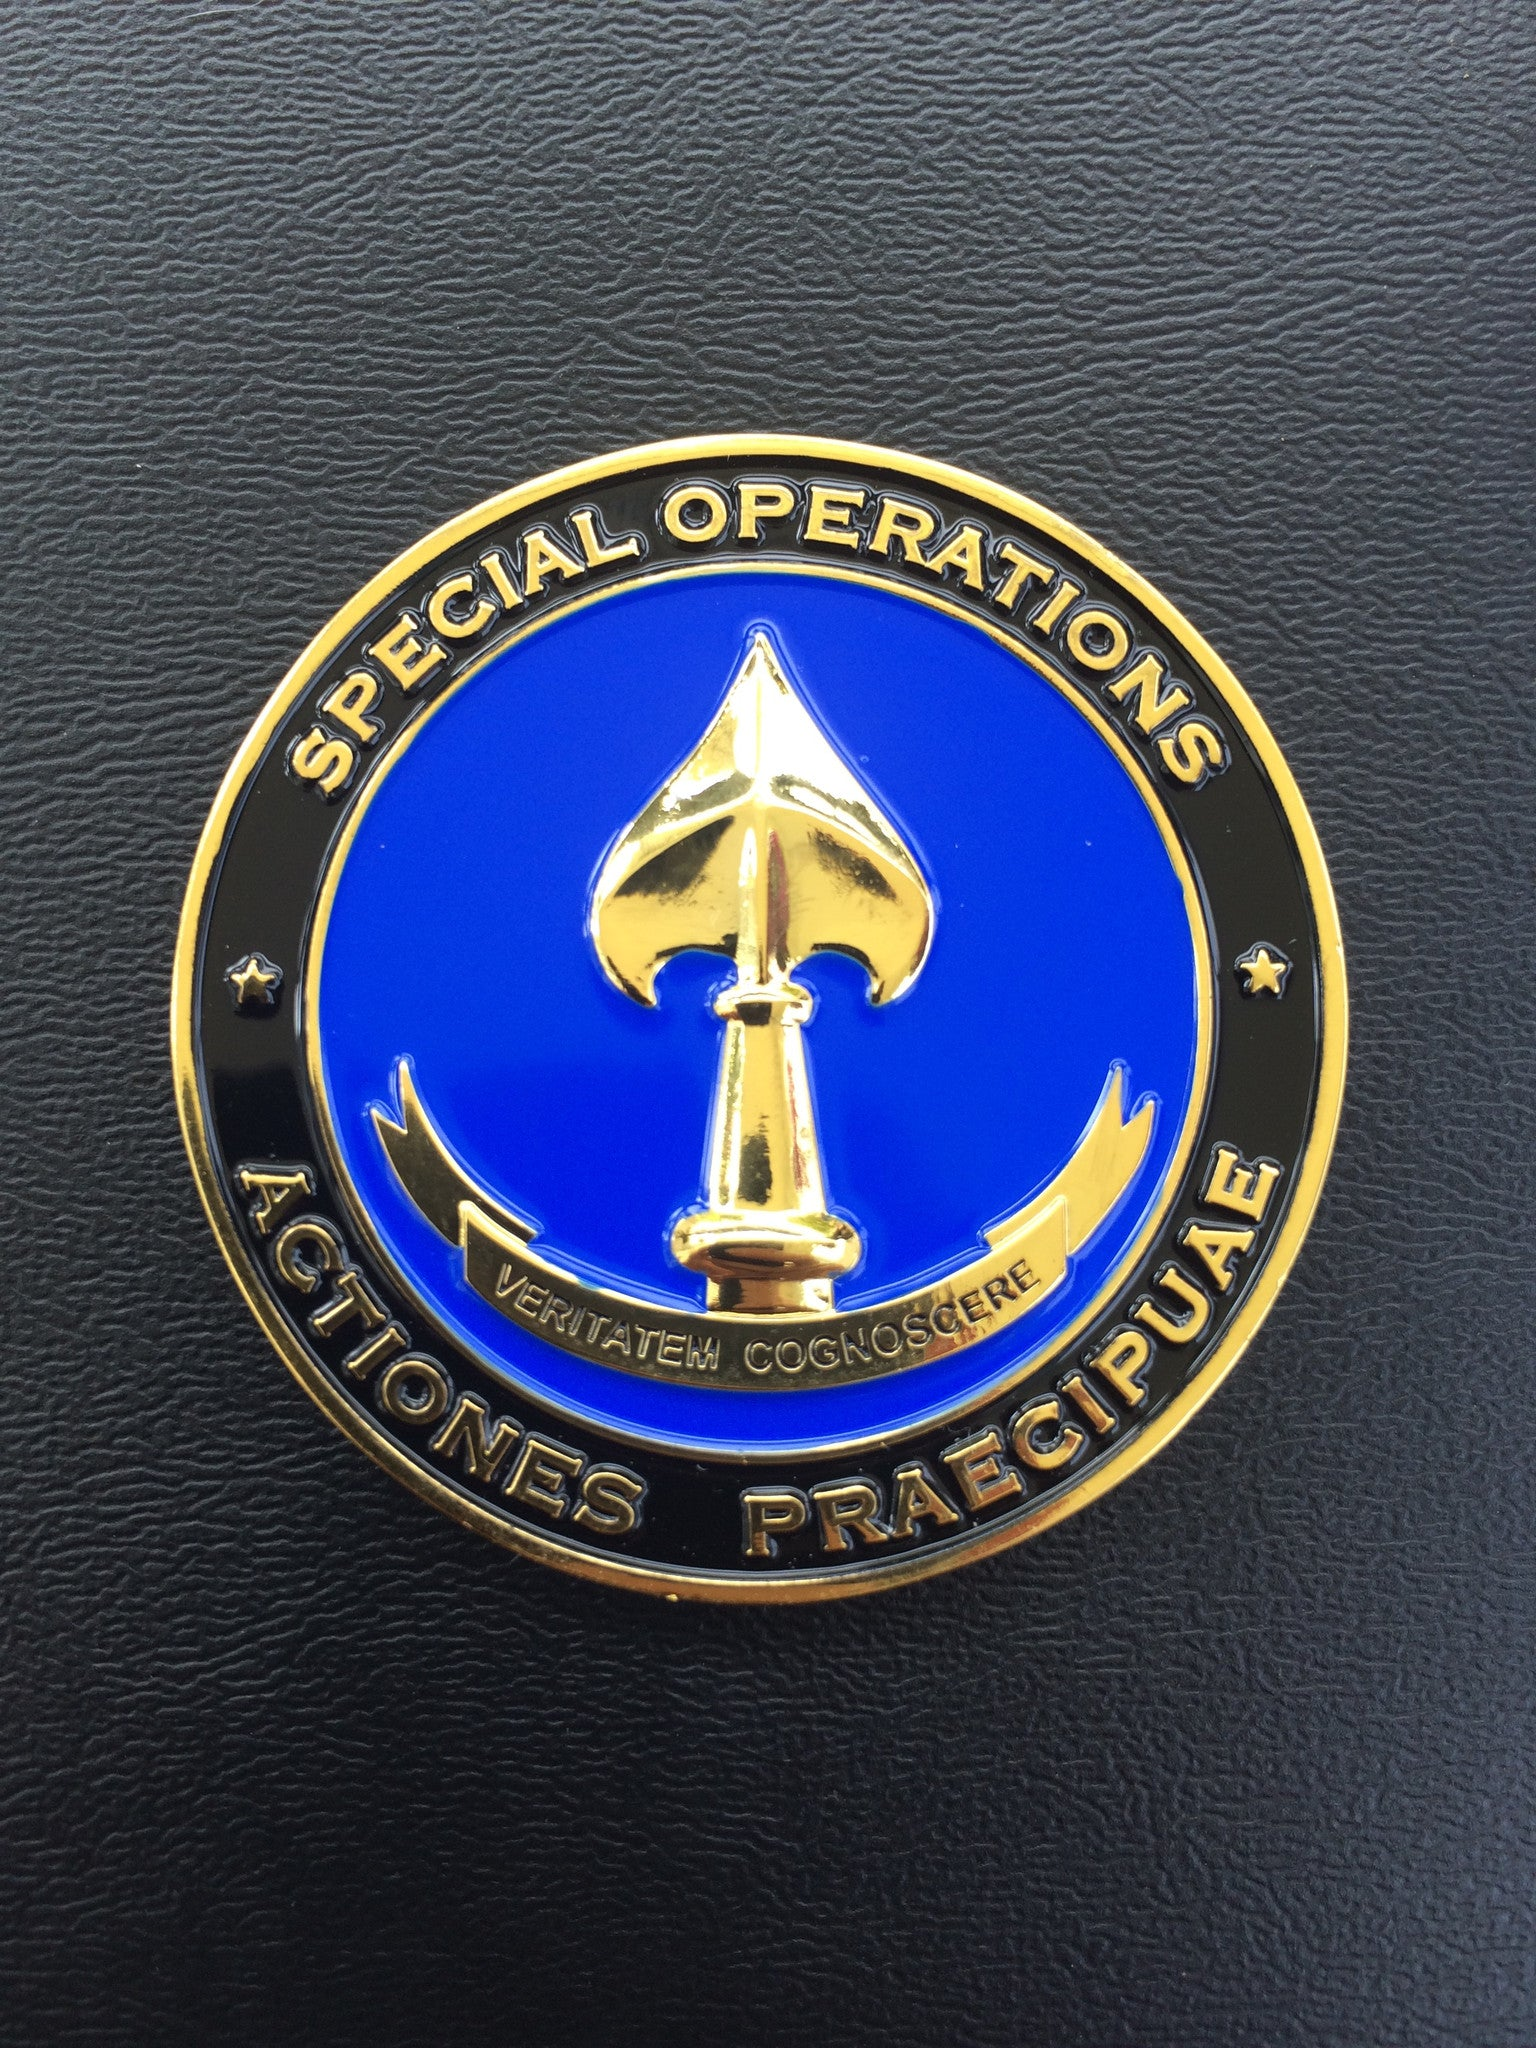 Central Intelligence Agency SAD Special Operations Group (SOG)